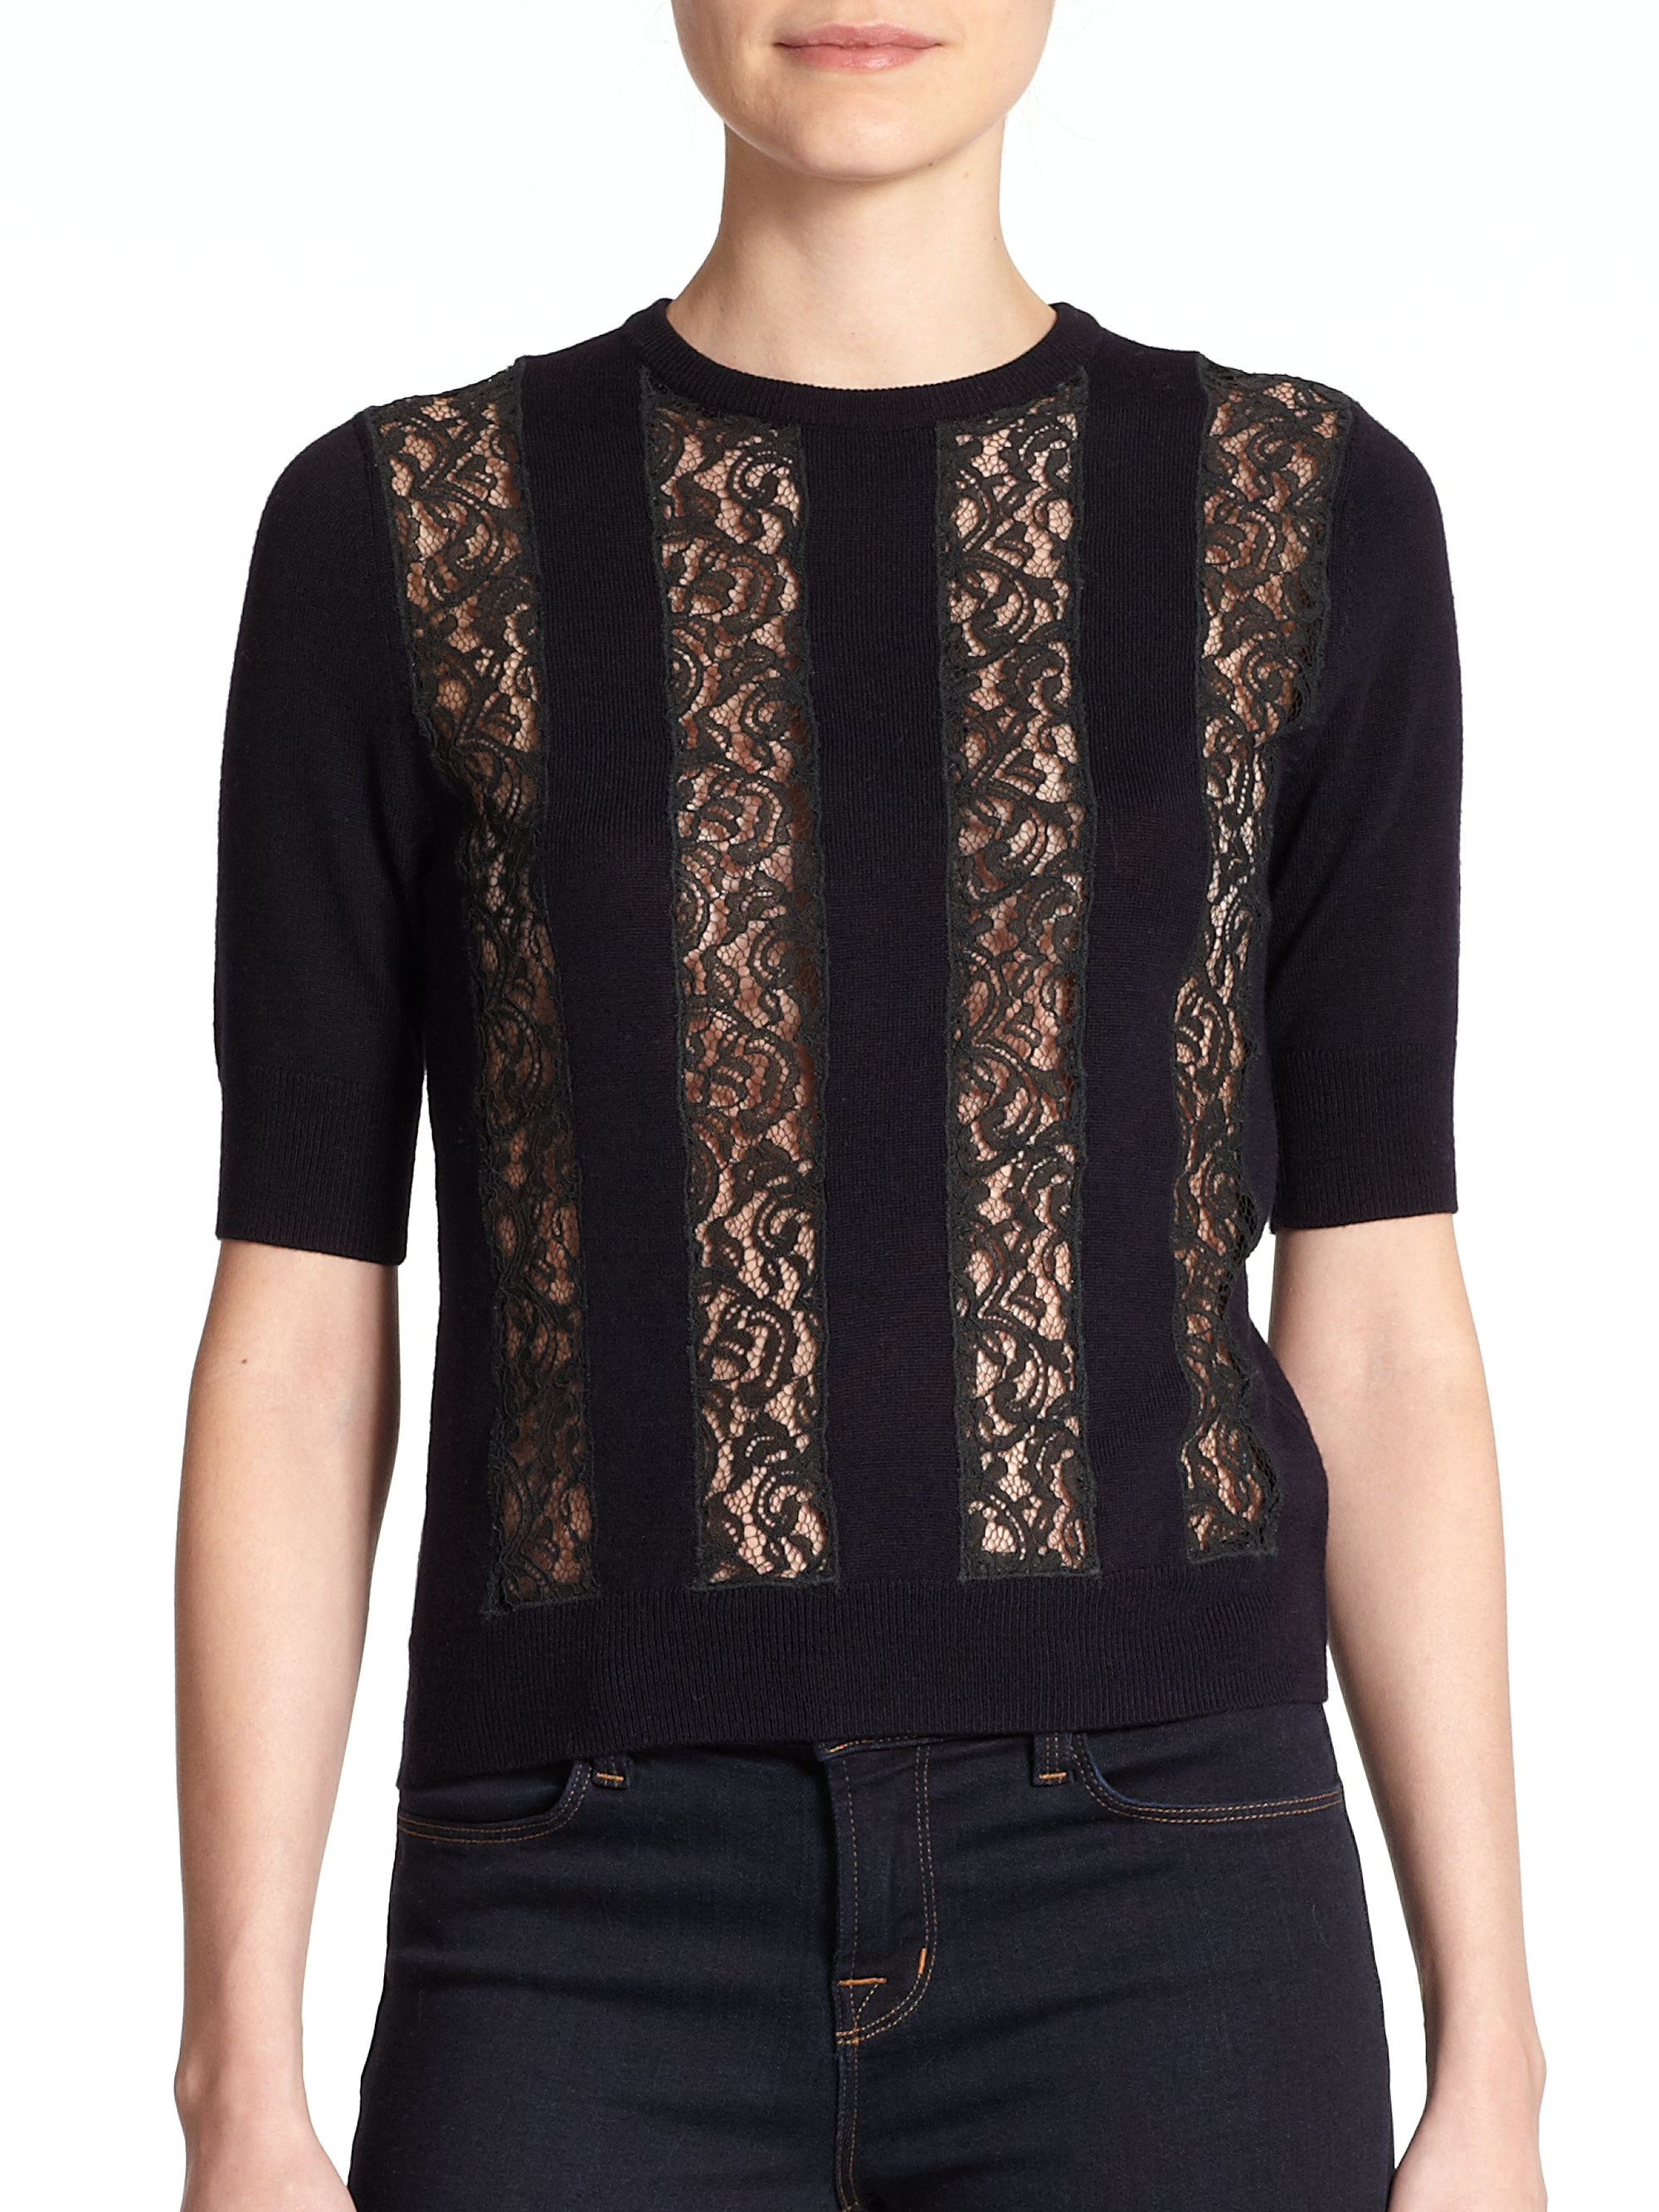 Carven Wool Lace-panel Sweater in Blue | Lyst